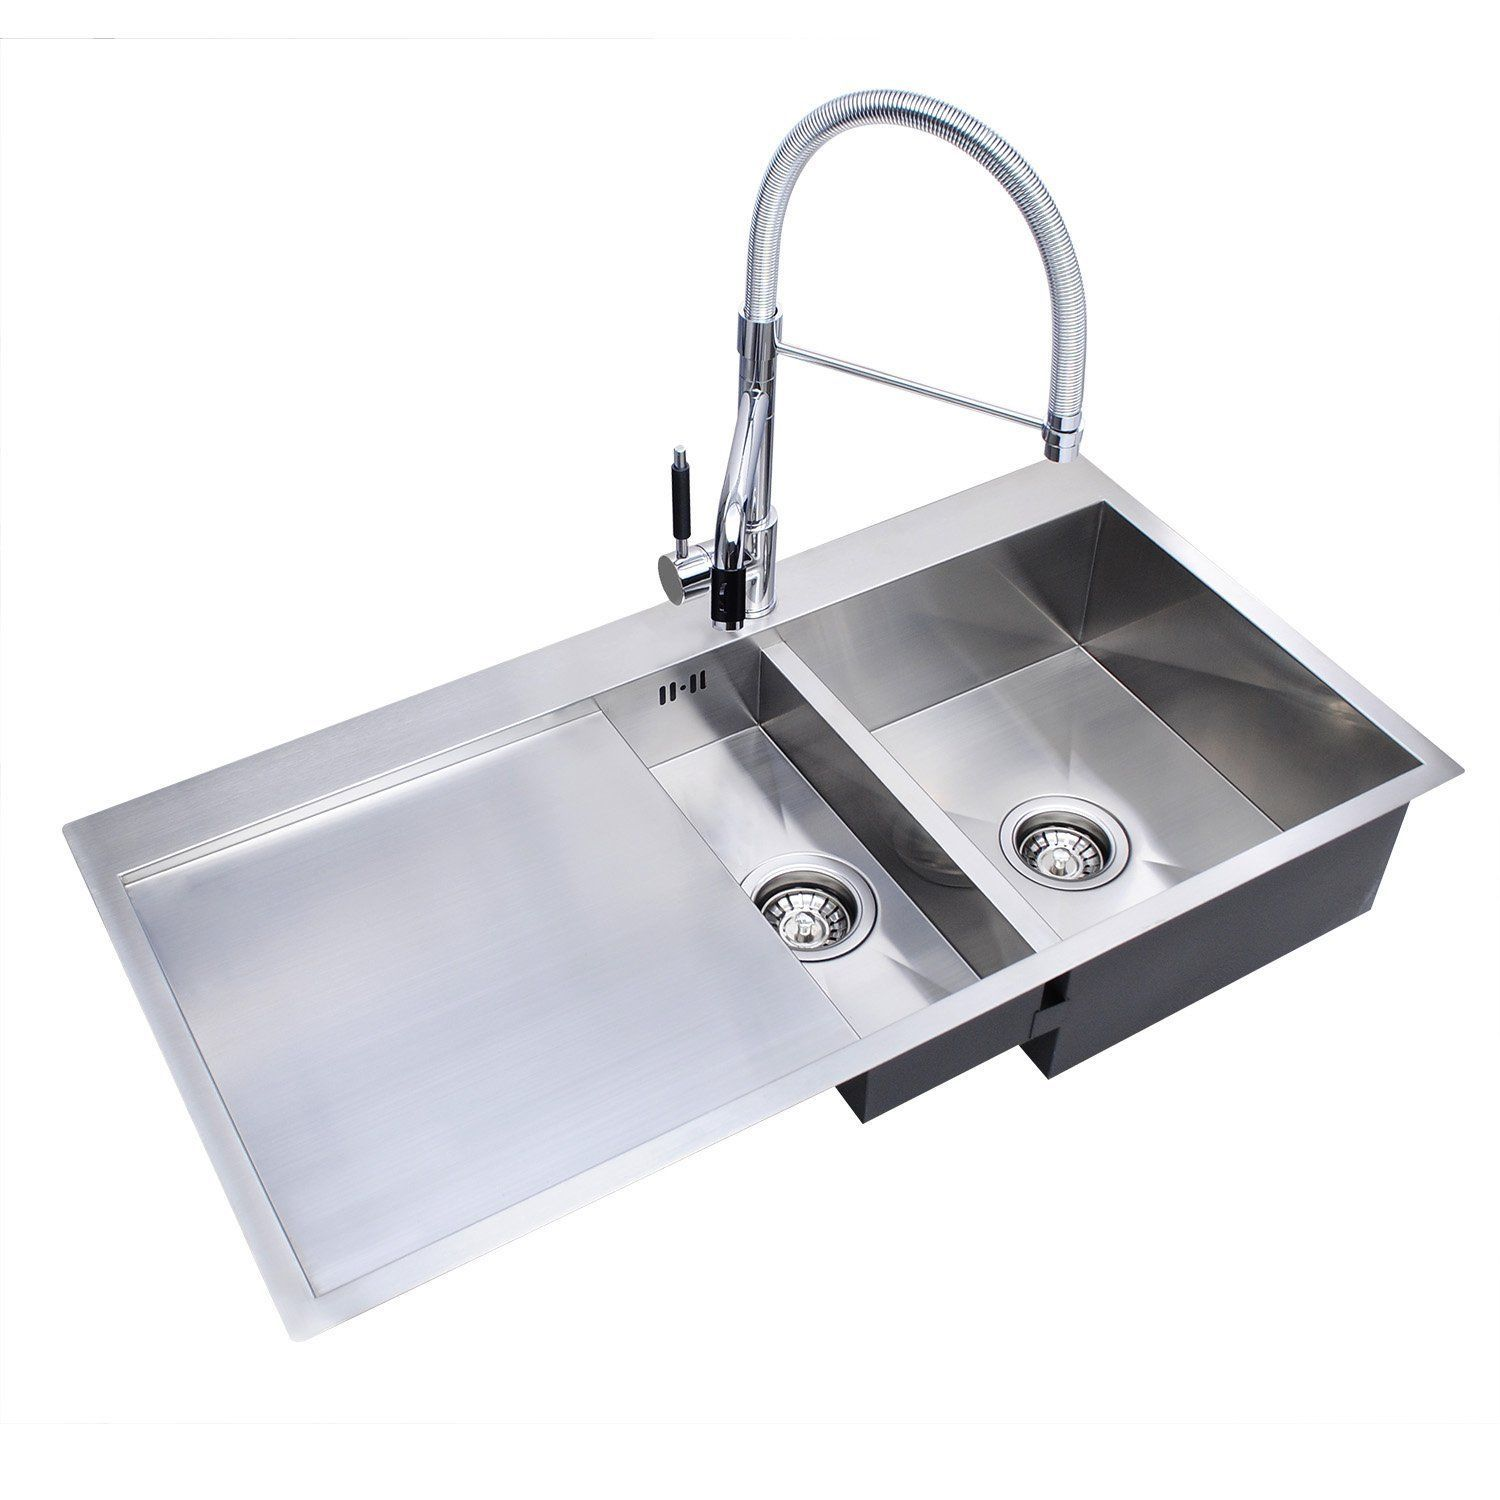 Handmade Square 1 5 Bowl Kitchen Sink Stainless Steel Left Hand Drainer Waste Ebay Stainless Steel Kitchen Sink Sink Kitchen Sink